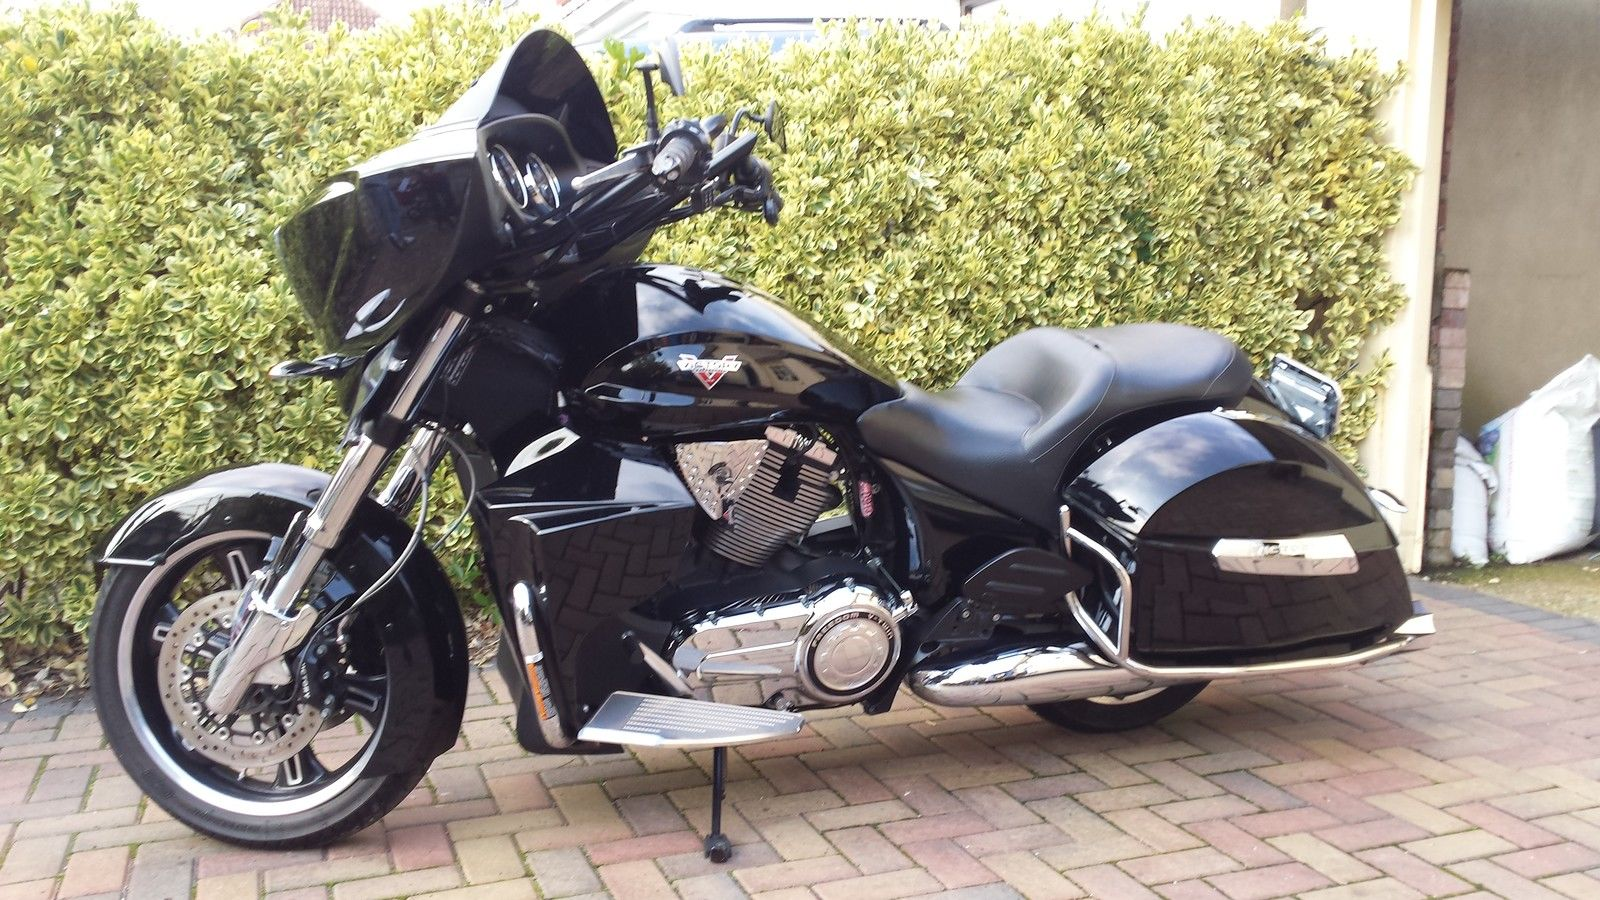 victory cross country tour custom touring bagger harley honda bmw. Black Bedroom Furniture Sets. Home Design Ideas